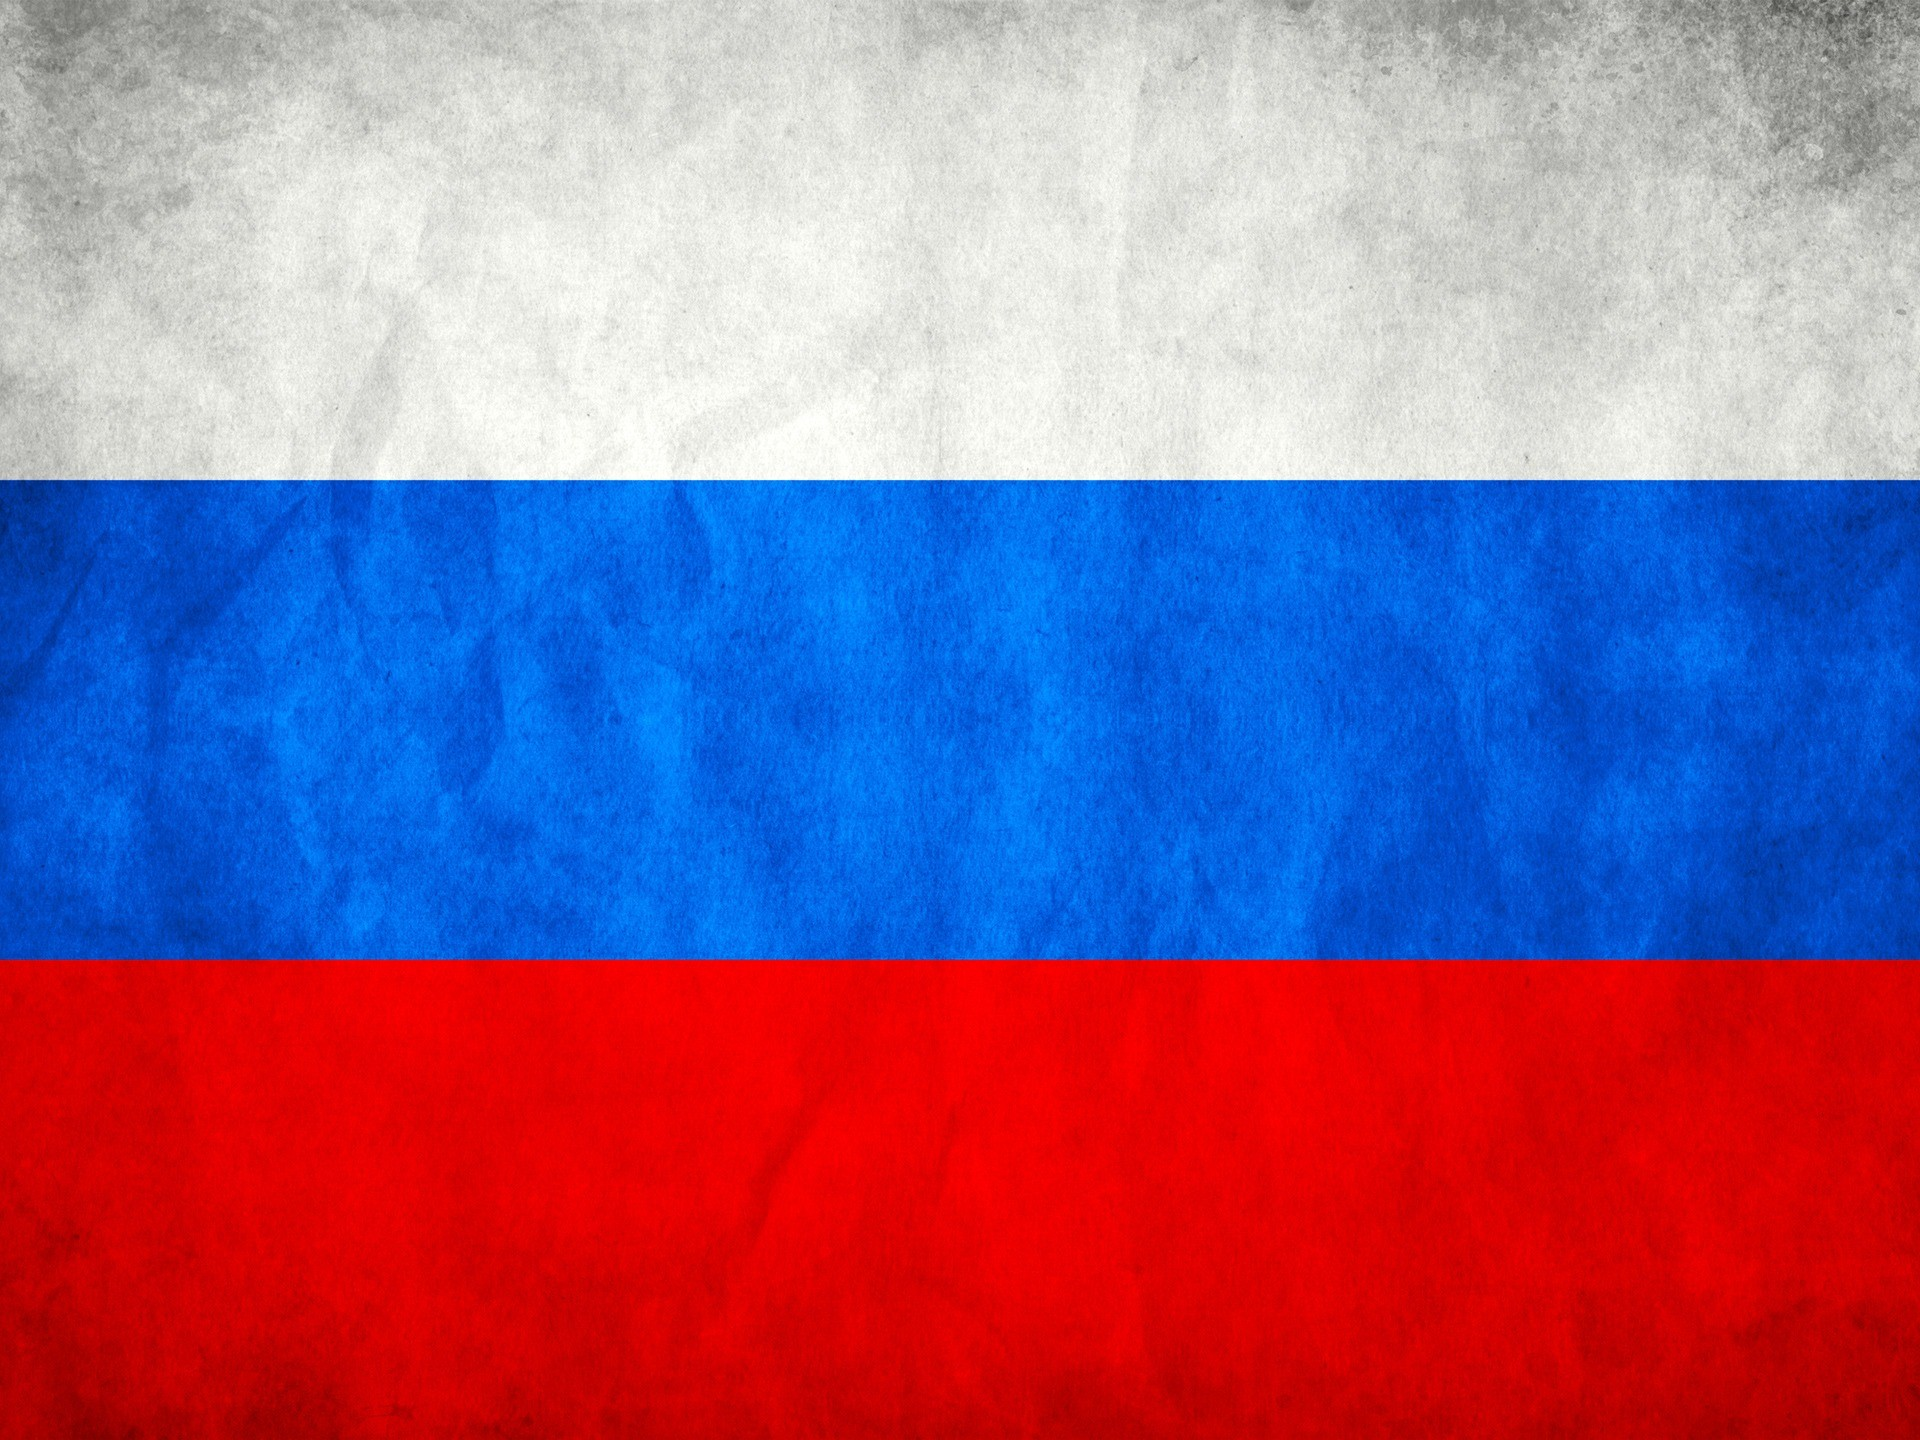 Res: 1920x1440, Russia Grungy Flag Wallpaper Russia World